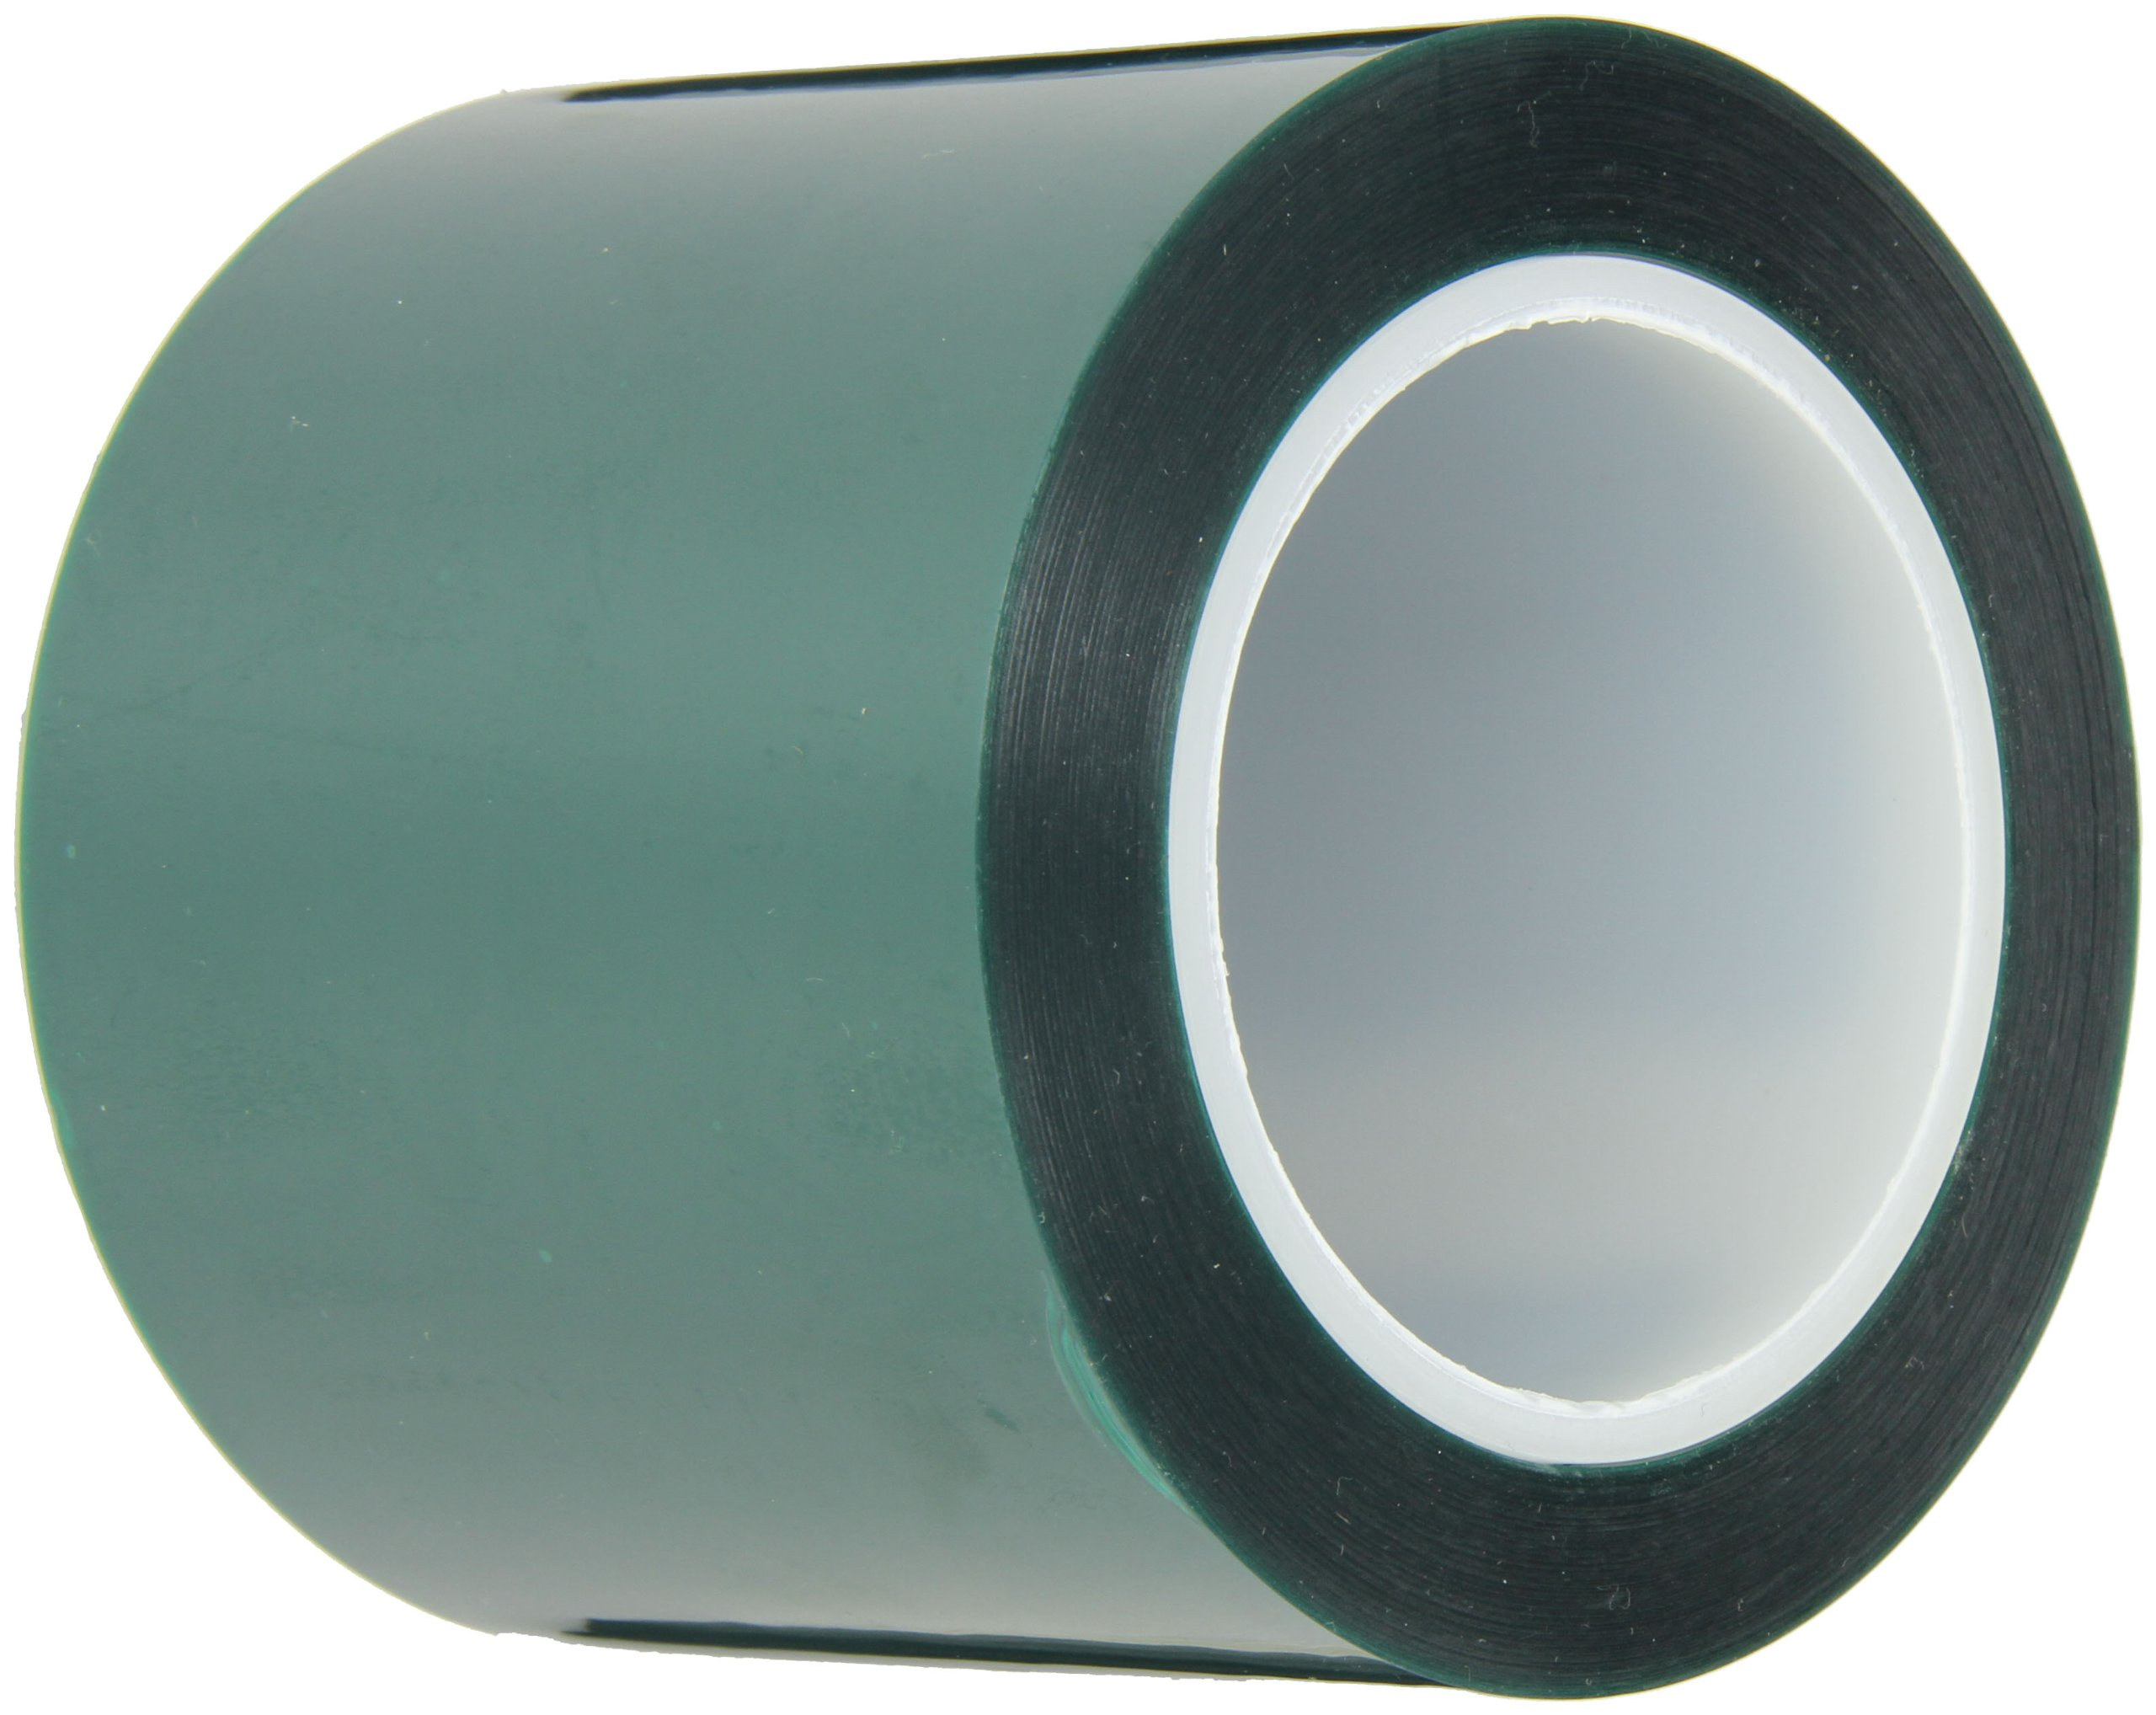 Maxi 248 Polyester/Silicone Single Coated Splicing Tape, 3.3 mil Thick, 72 yds Length, 4'' Width, Green